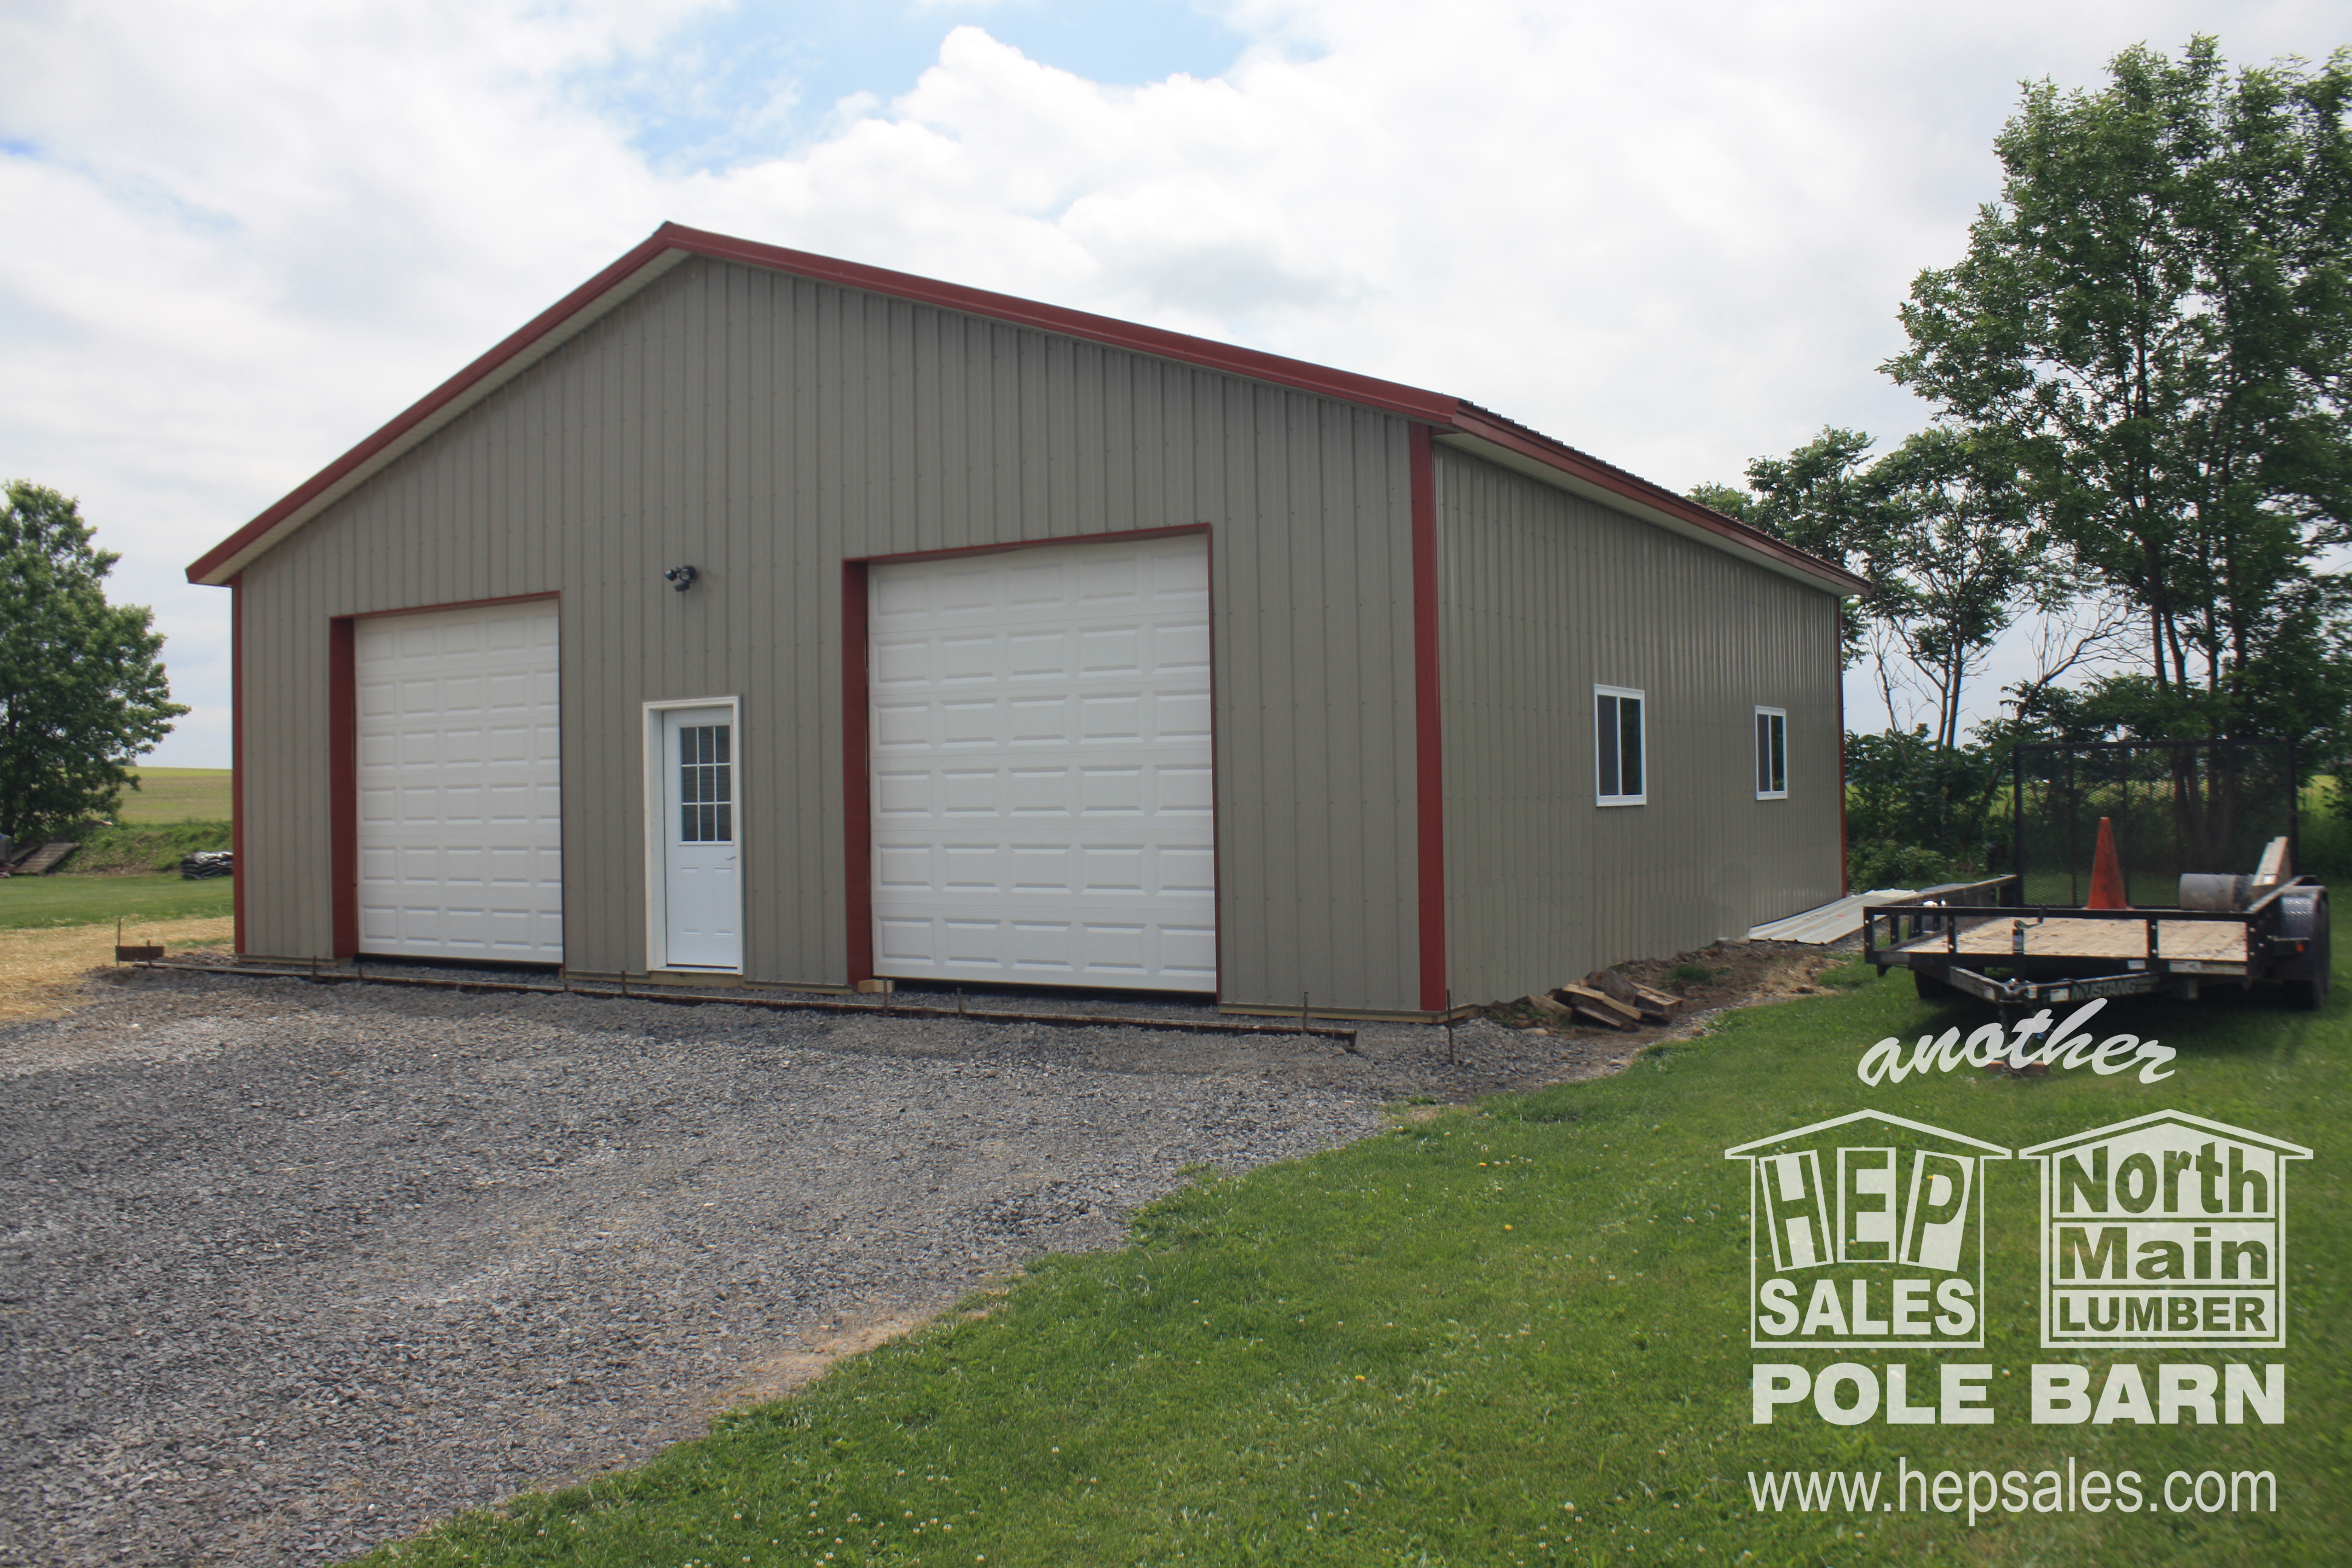 Thinking a new building would be ideal? A pole barn-type building is the  most cost-effective, easiest expansion you can make.